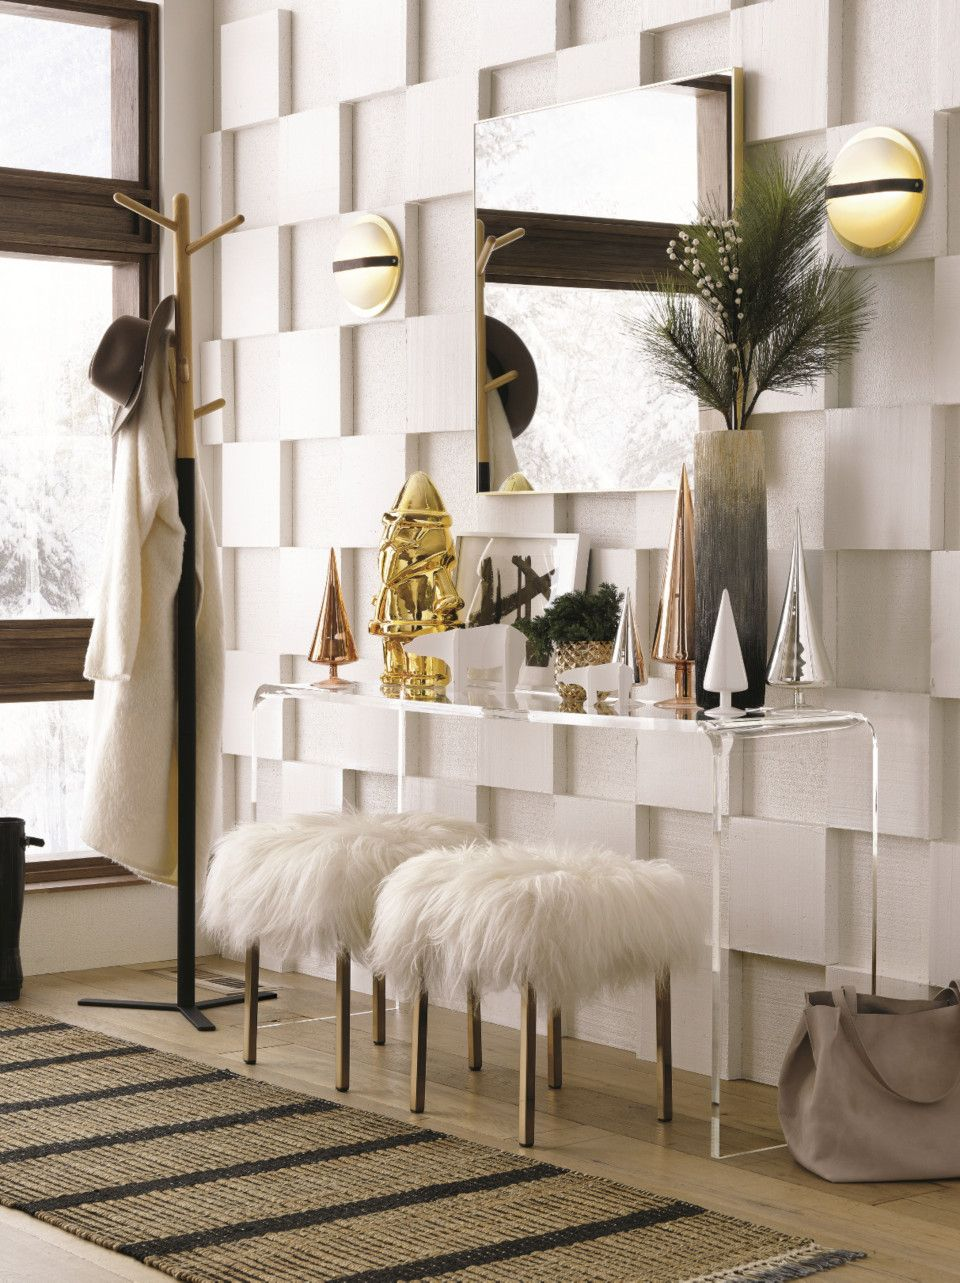 Charming Modern Holiday Decorating Ideas Part - 4: Modern Holiday Decorating Ideas